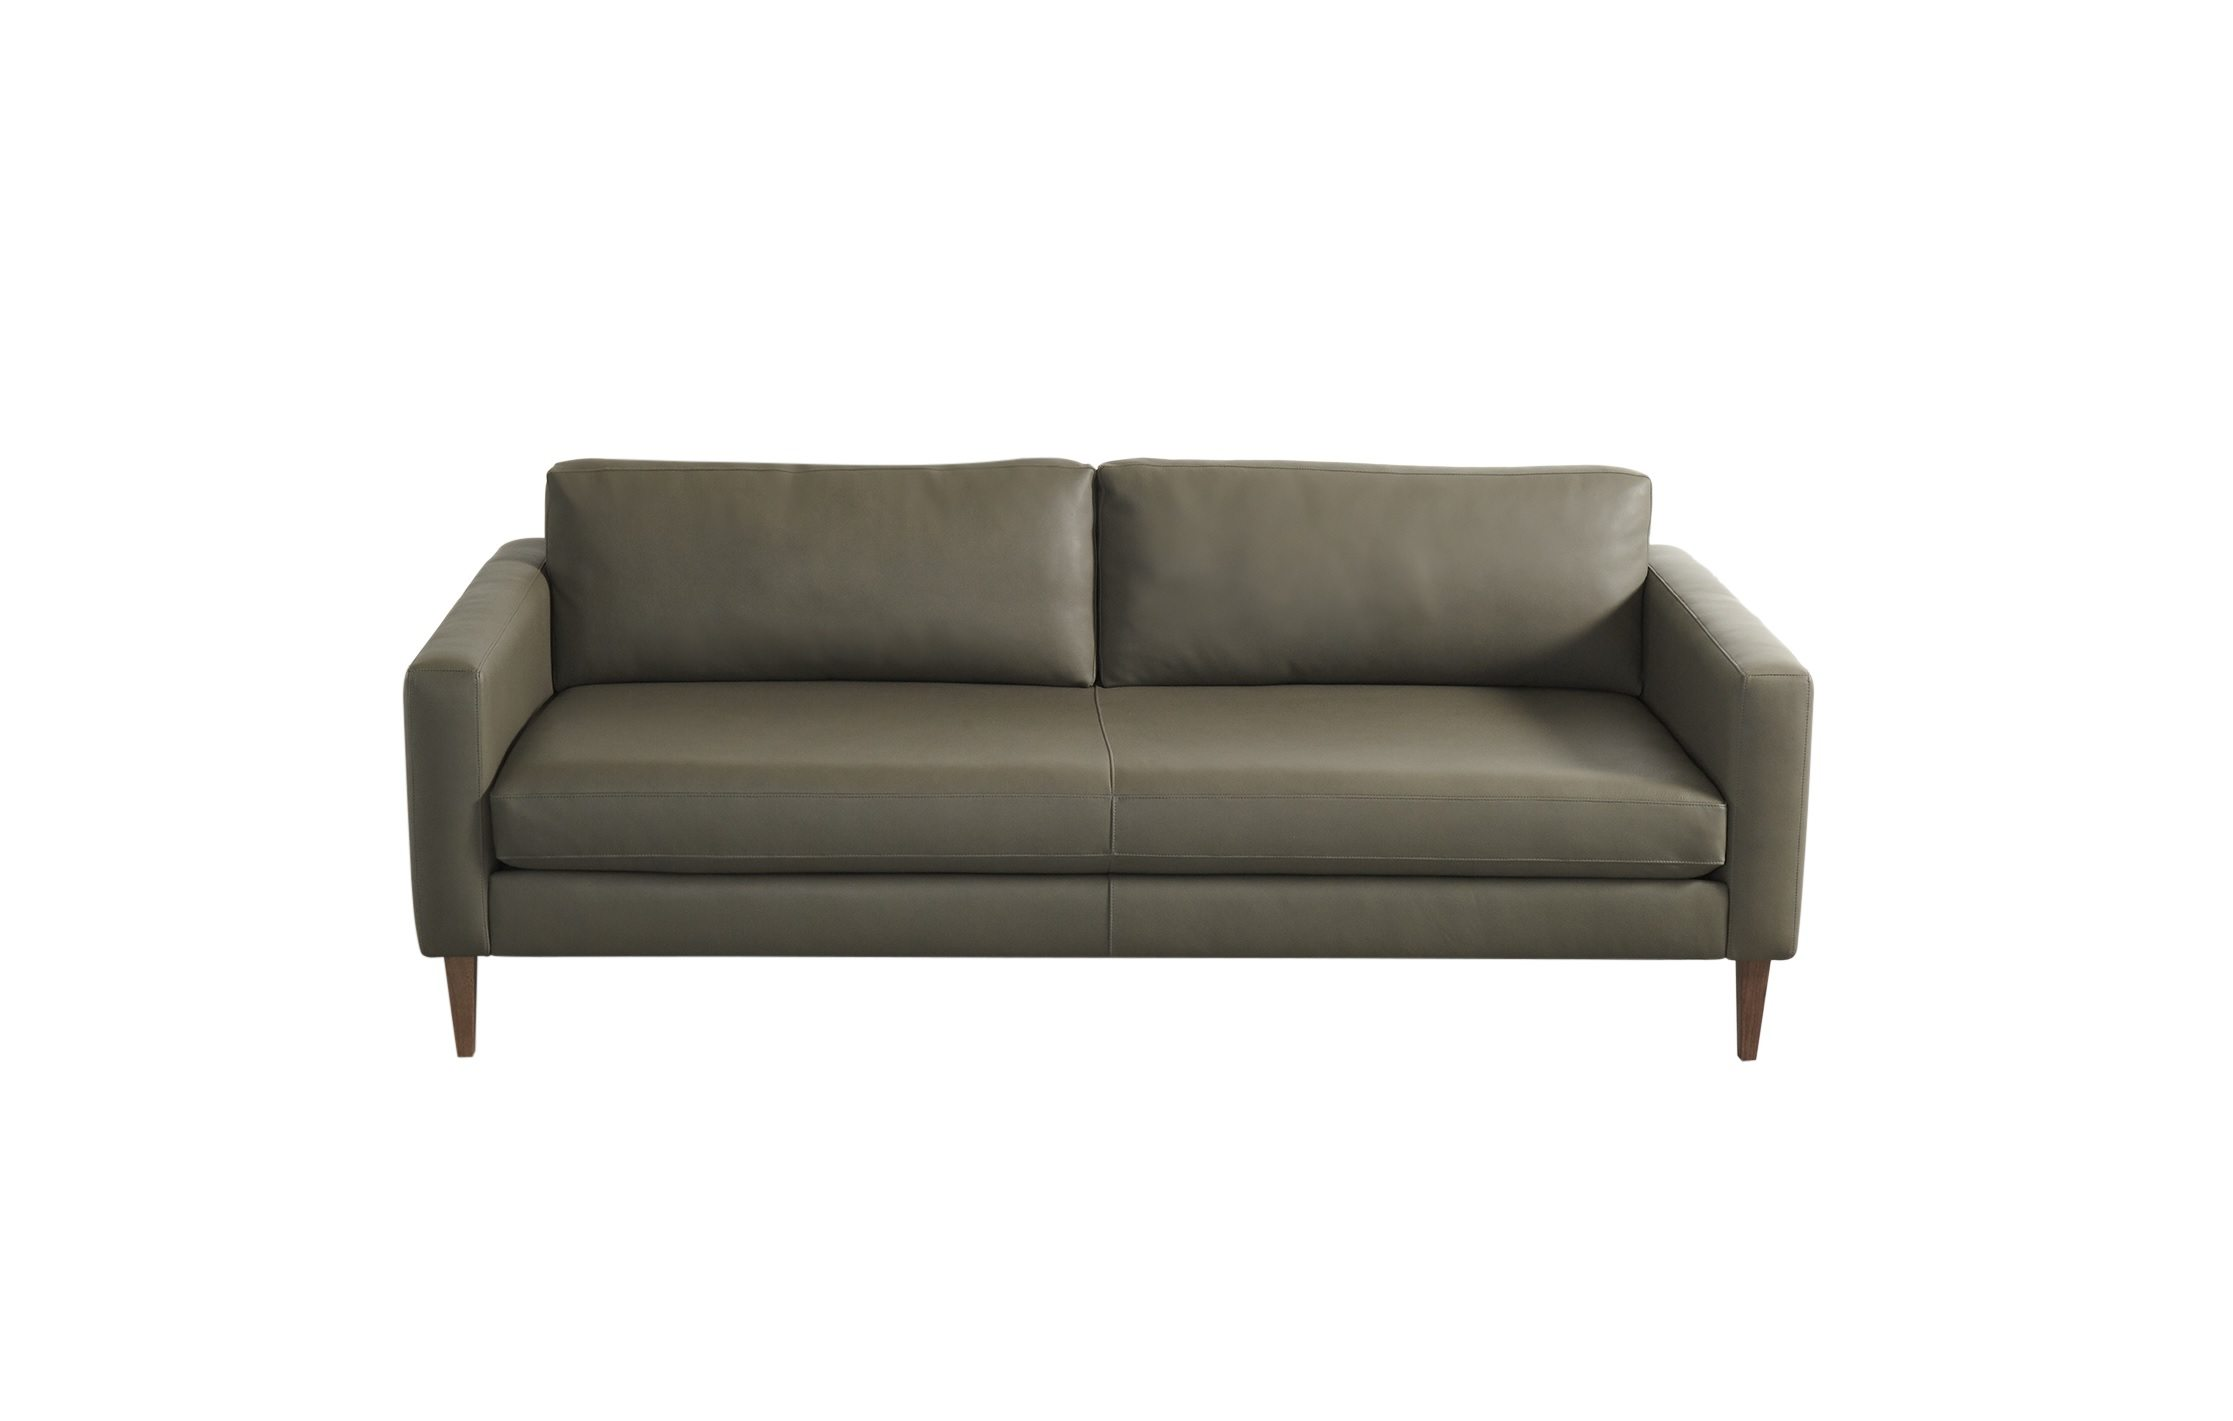 personalize-grand-track-sofa-fronthigh